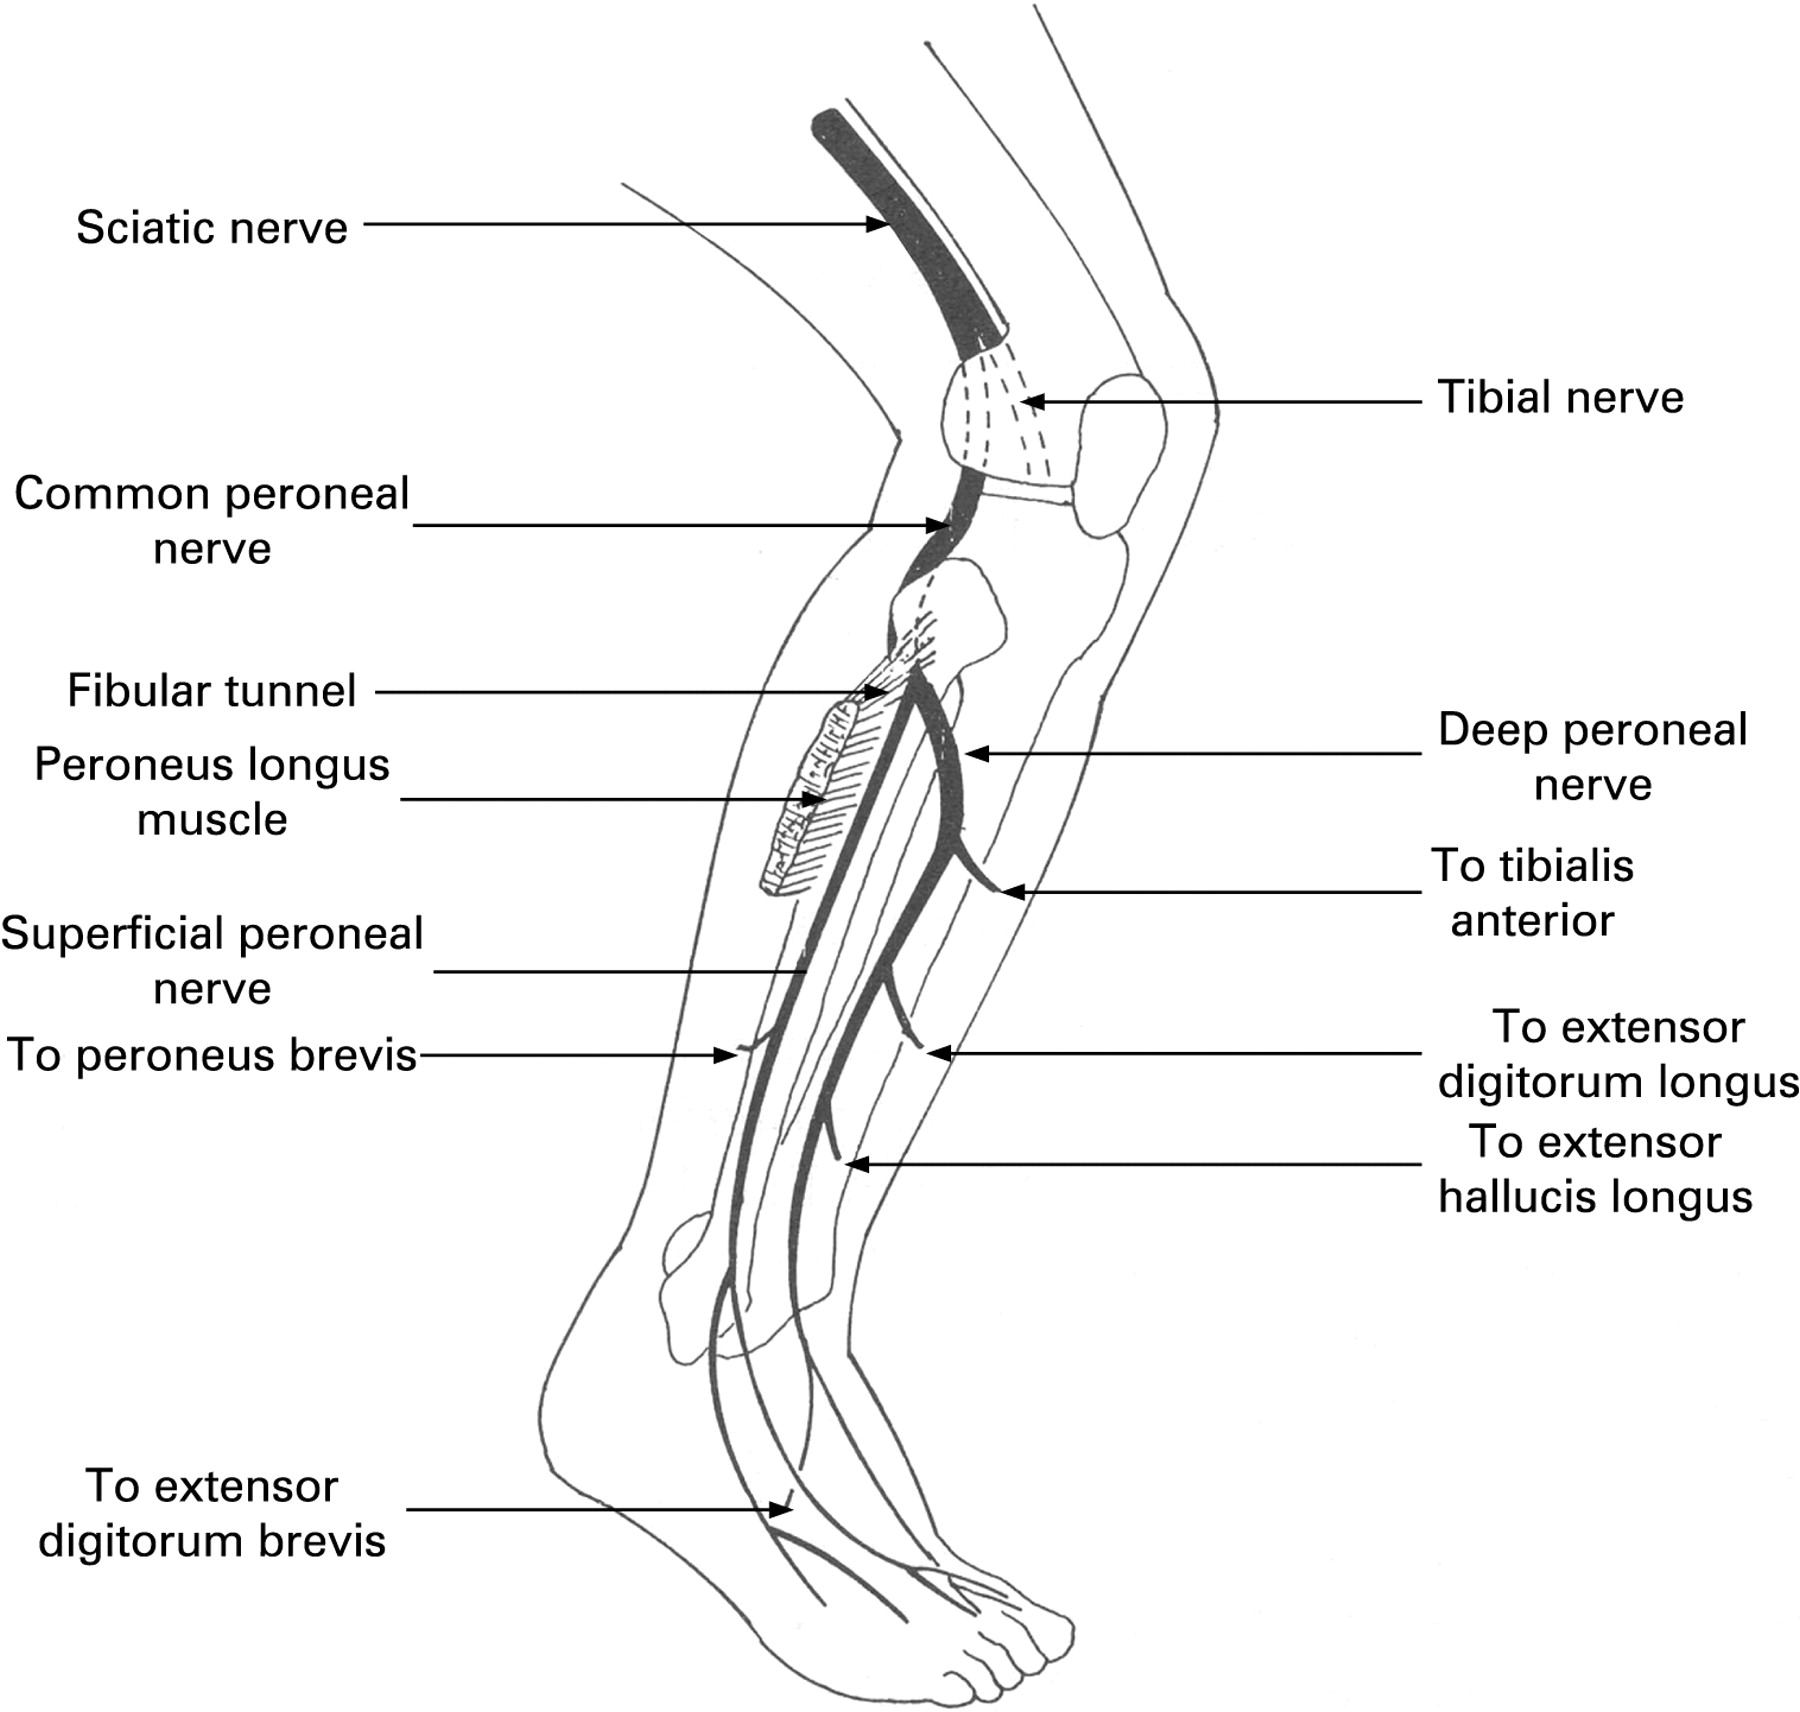 Common Peroneal Nerve